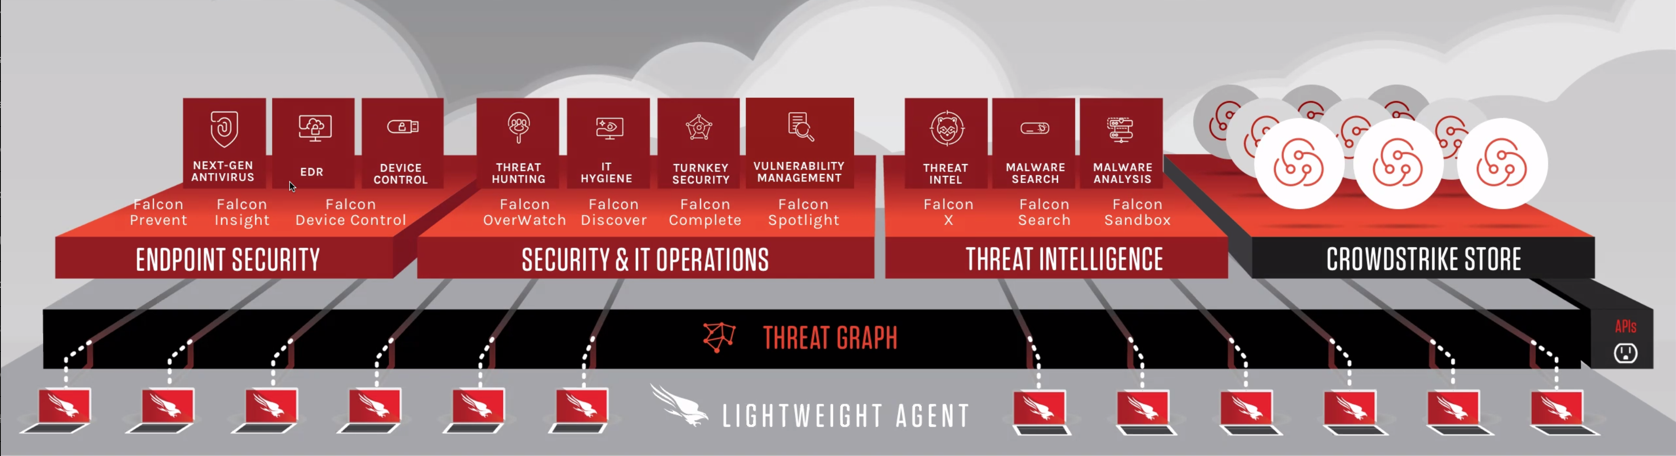 CrowdStrike modules and functionality.